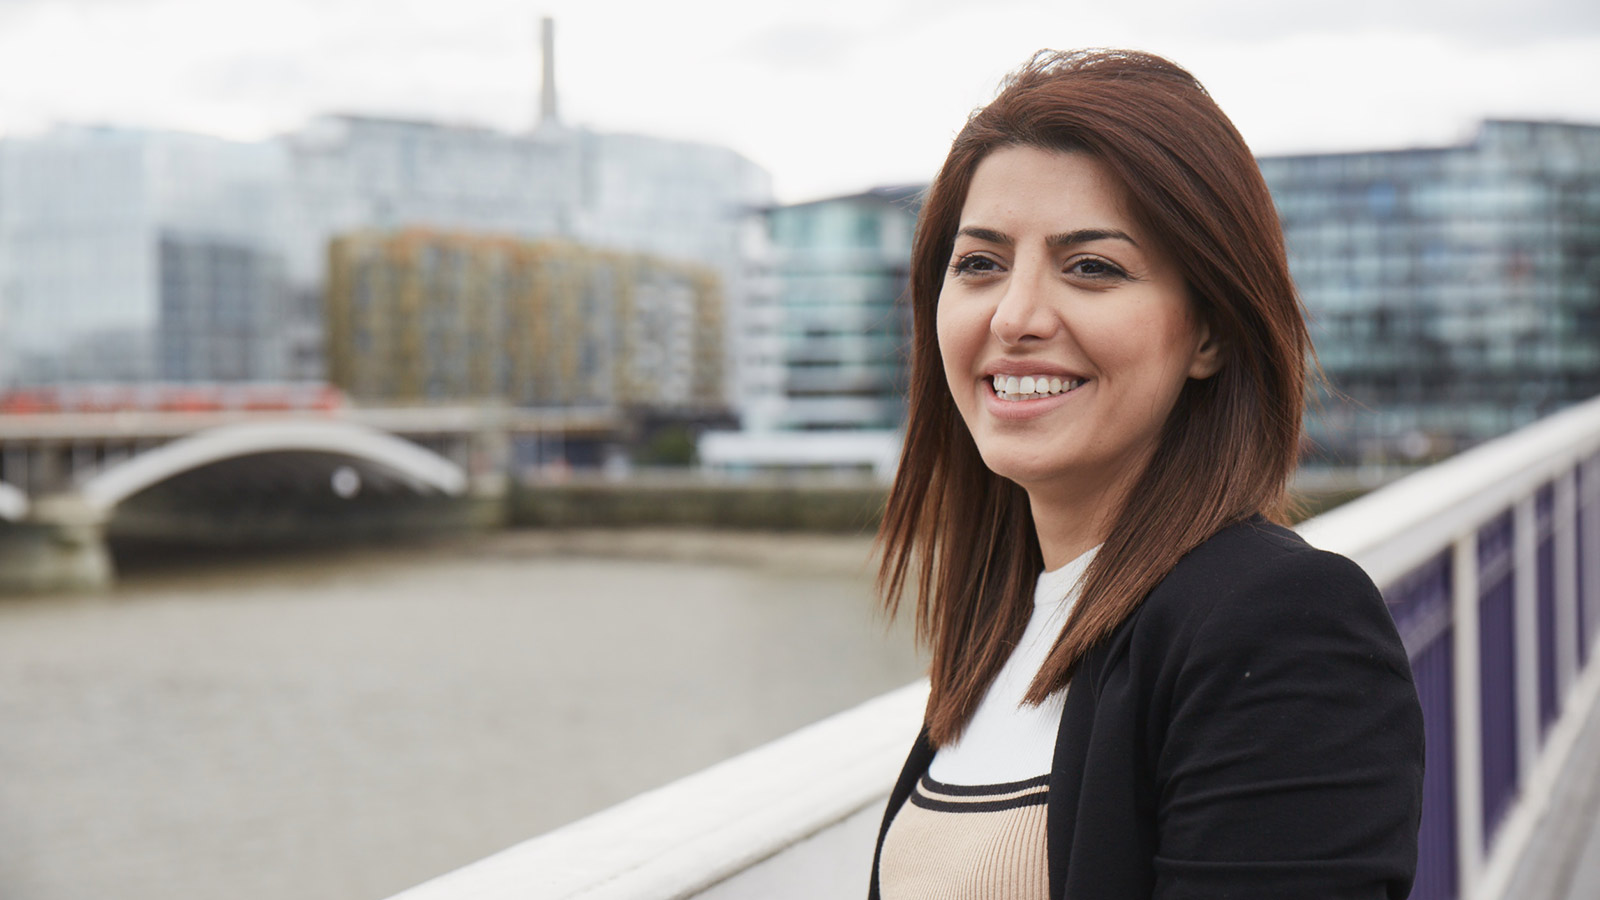 Azadeh Farhadmehr, MEP Planning Manager at Mace